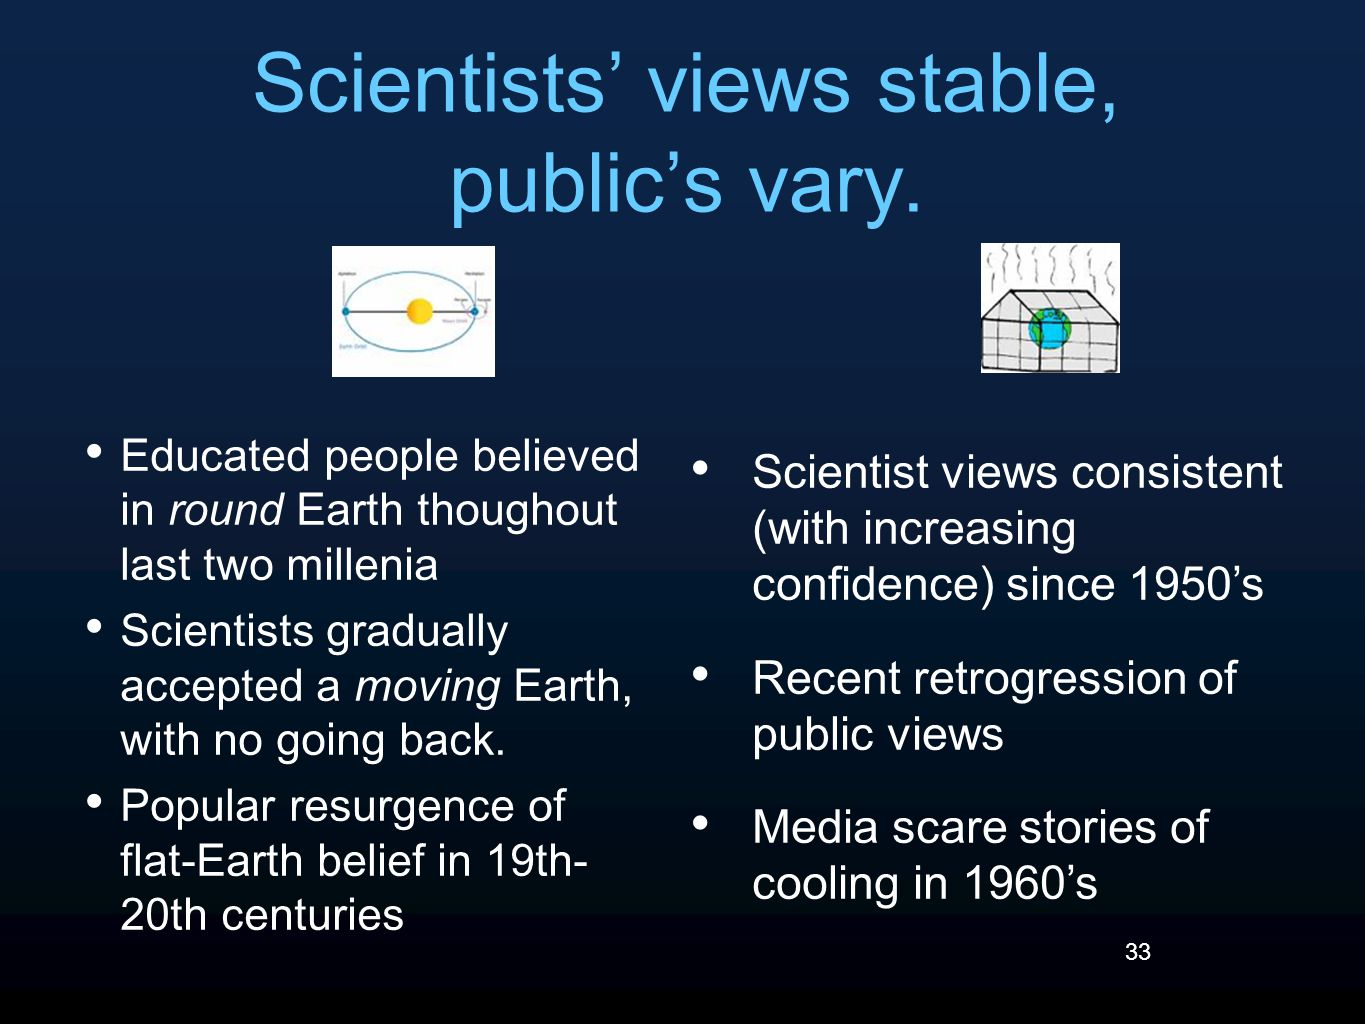 33 Scientists' views stable, public's vary.